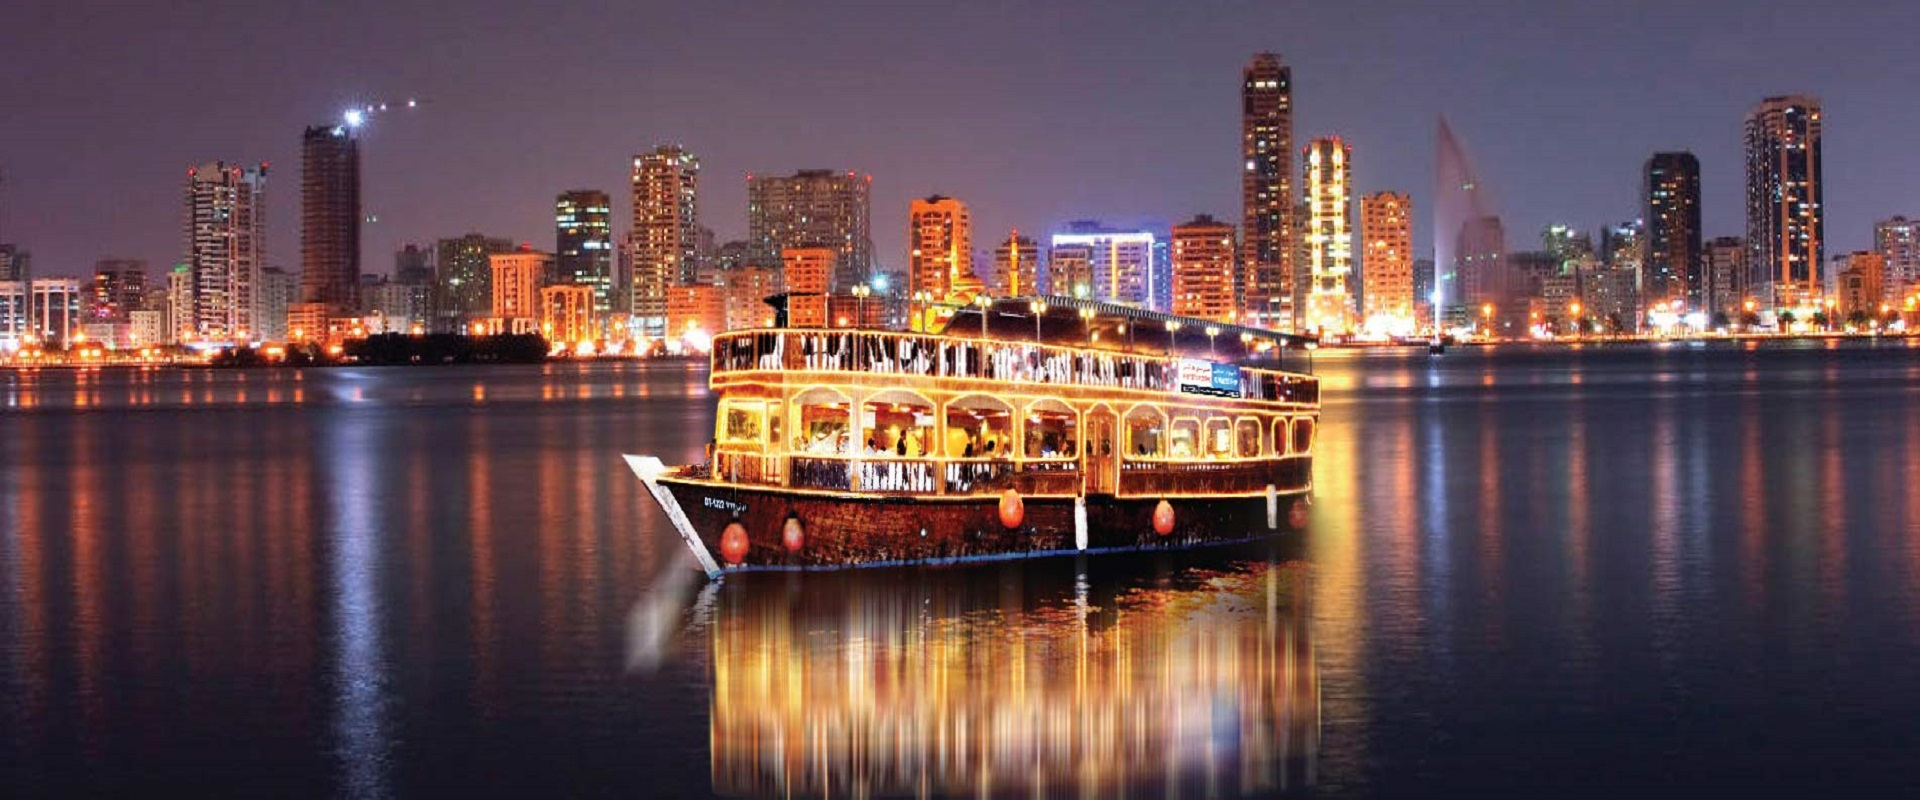 Creek Dhow Cruise Five Star